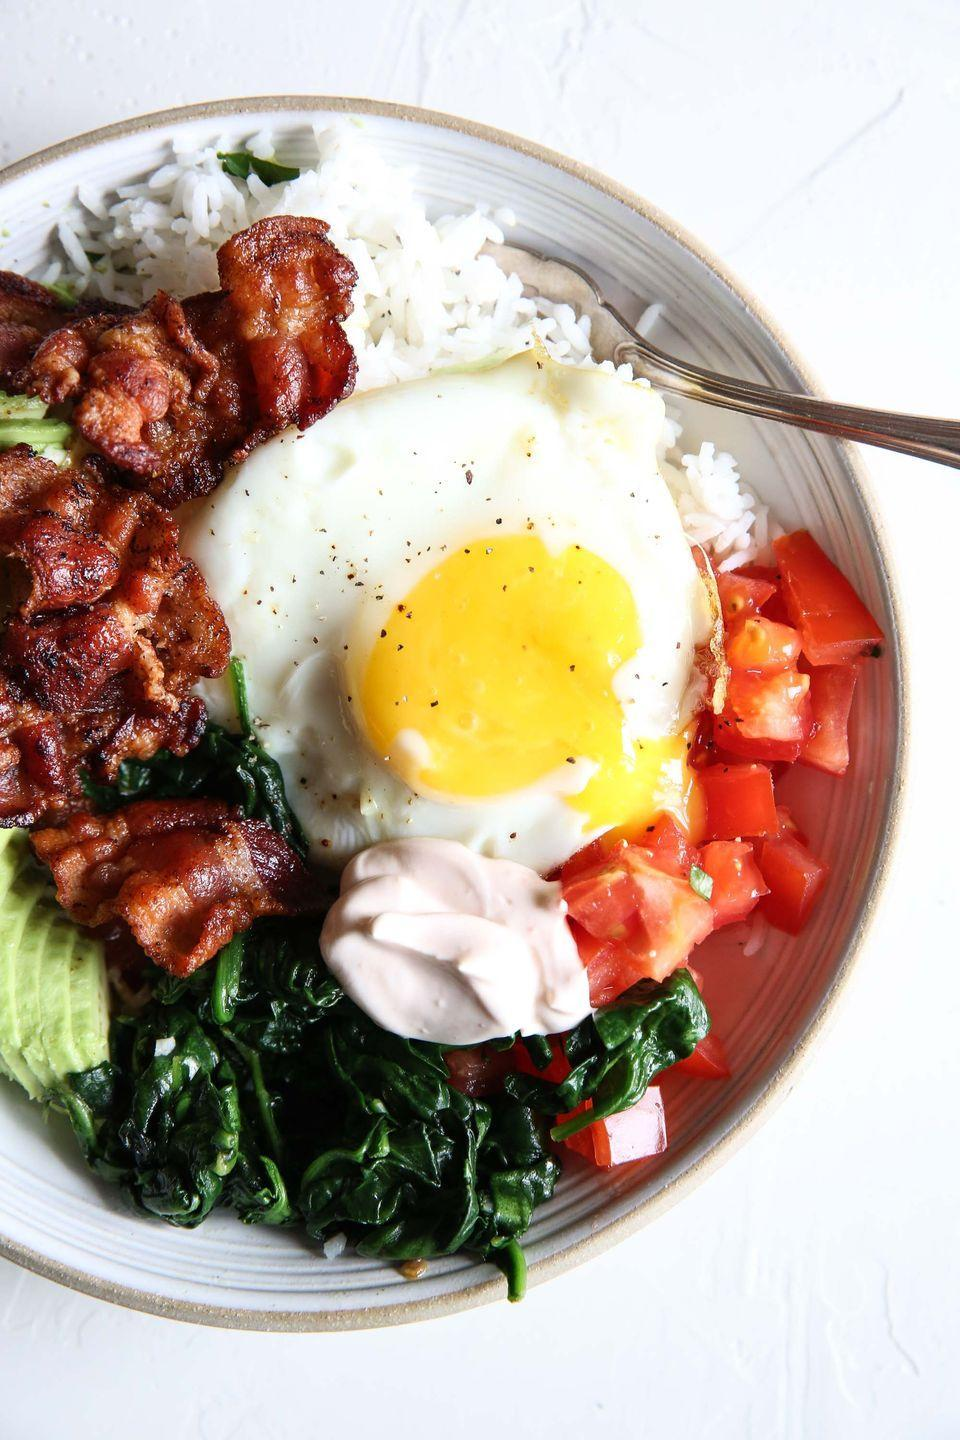 """<p>BLTs are breaking out from bread.</p><p><span class=""""redactor-invisible-space"""">Get the recipe from <a href=""""https://www.delish.com/cooking/recipe-ideas/recipes/a51789/blt-rice-bowl-recipe/"""" rel=""""nofollow noopener"""" target=""""_blank"""" data-ylk=""""slk:Delish"""" class=""""link rapid-noclick-resp"""">Delish</a>.</span></p>"""